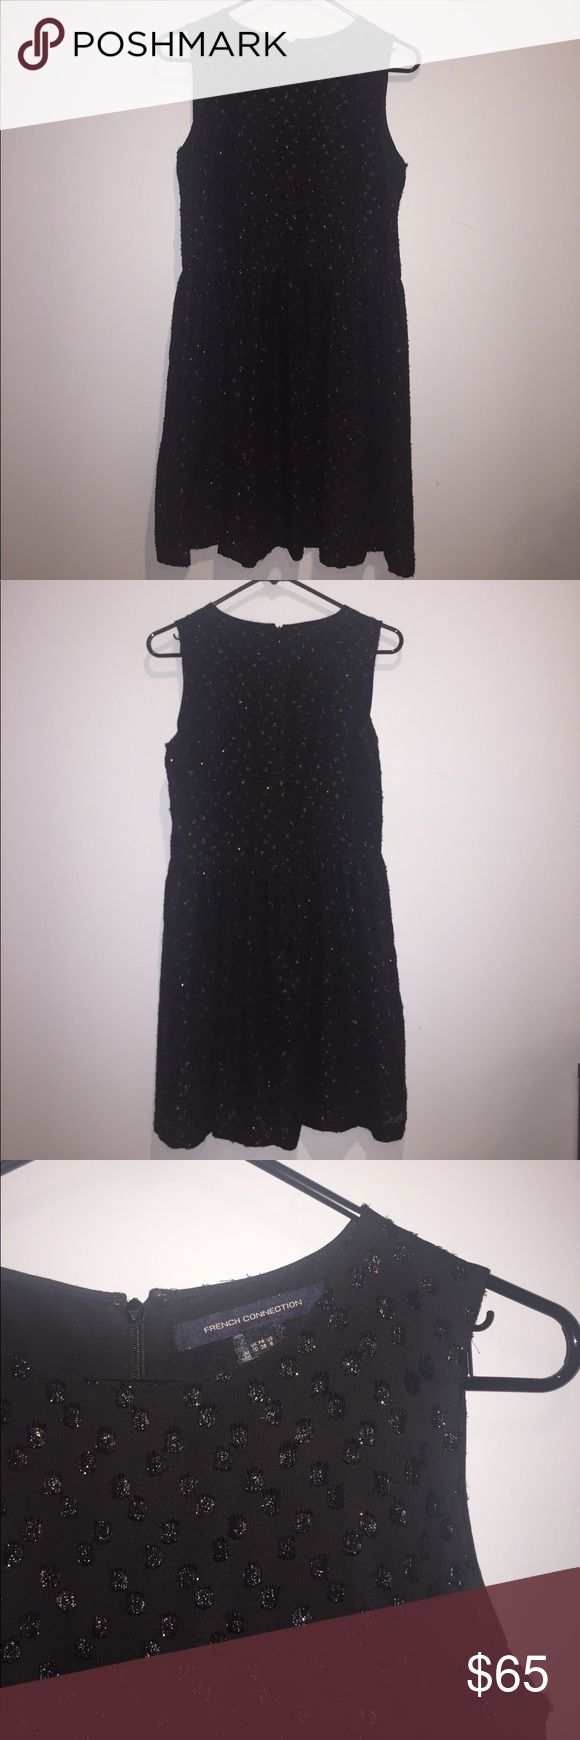 FRENCH CONNECTION BLACK FORMAL DRESS Love this little black formal dress from French Connection! The sparkly polka dots are super cute but not too crazy! Worn only once! In perfect condition! Good for formal occasions! French Connection Dresses